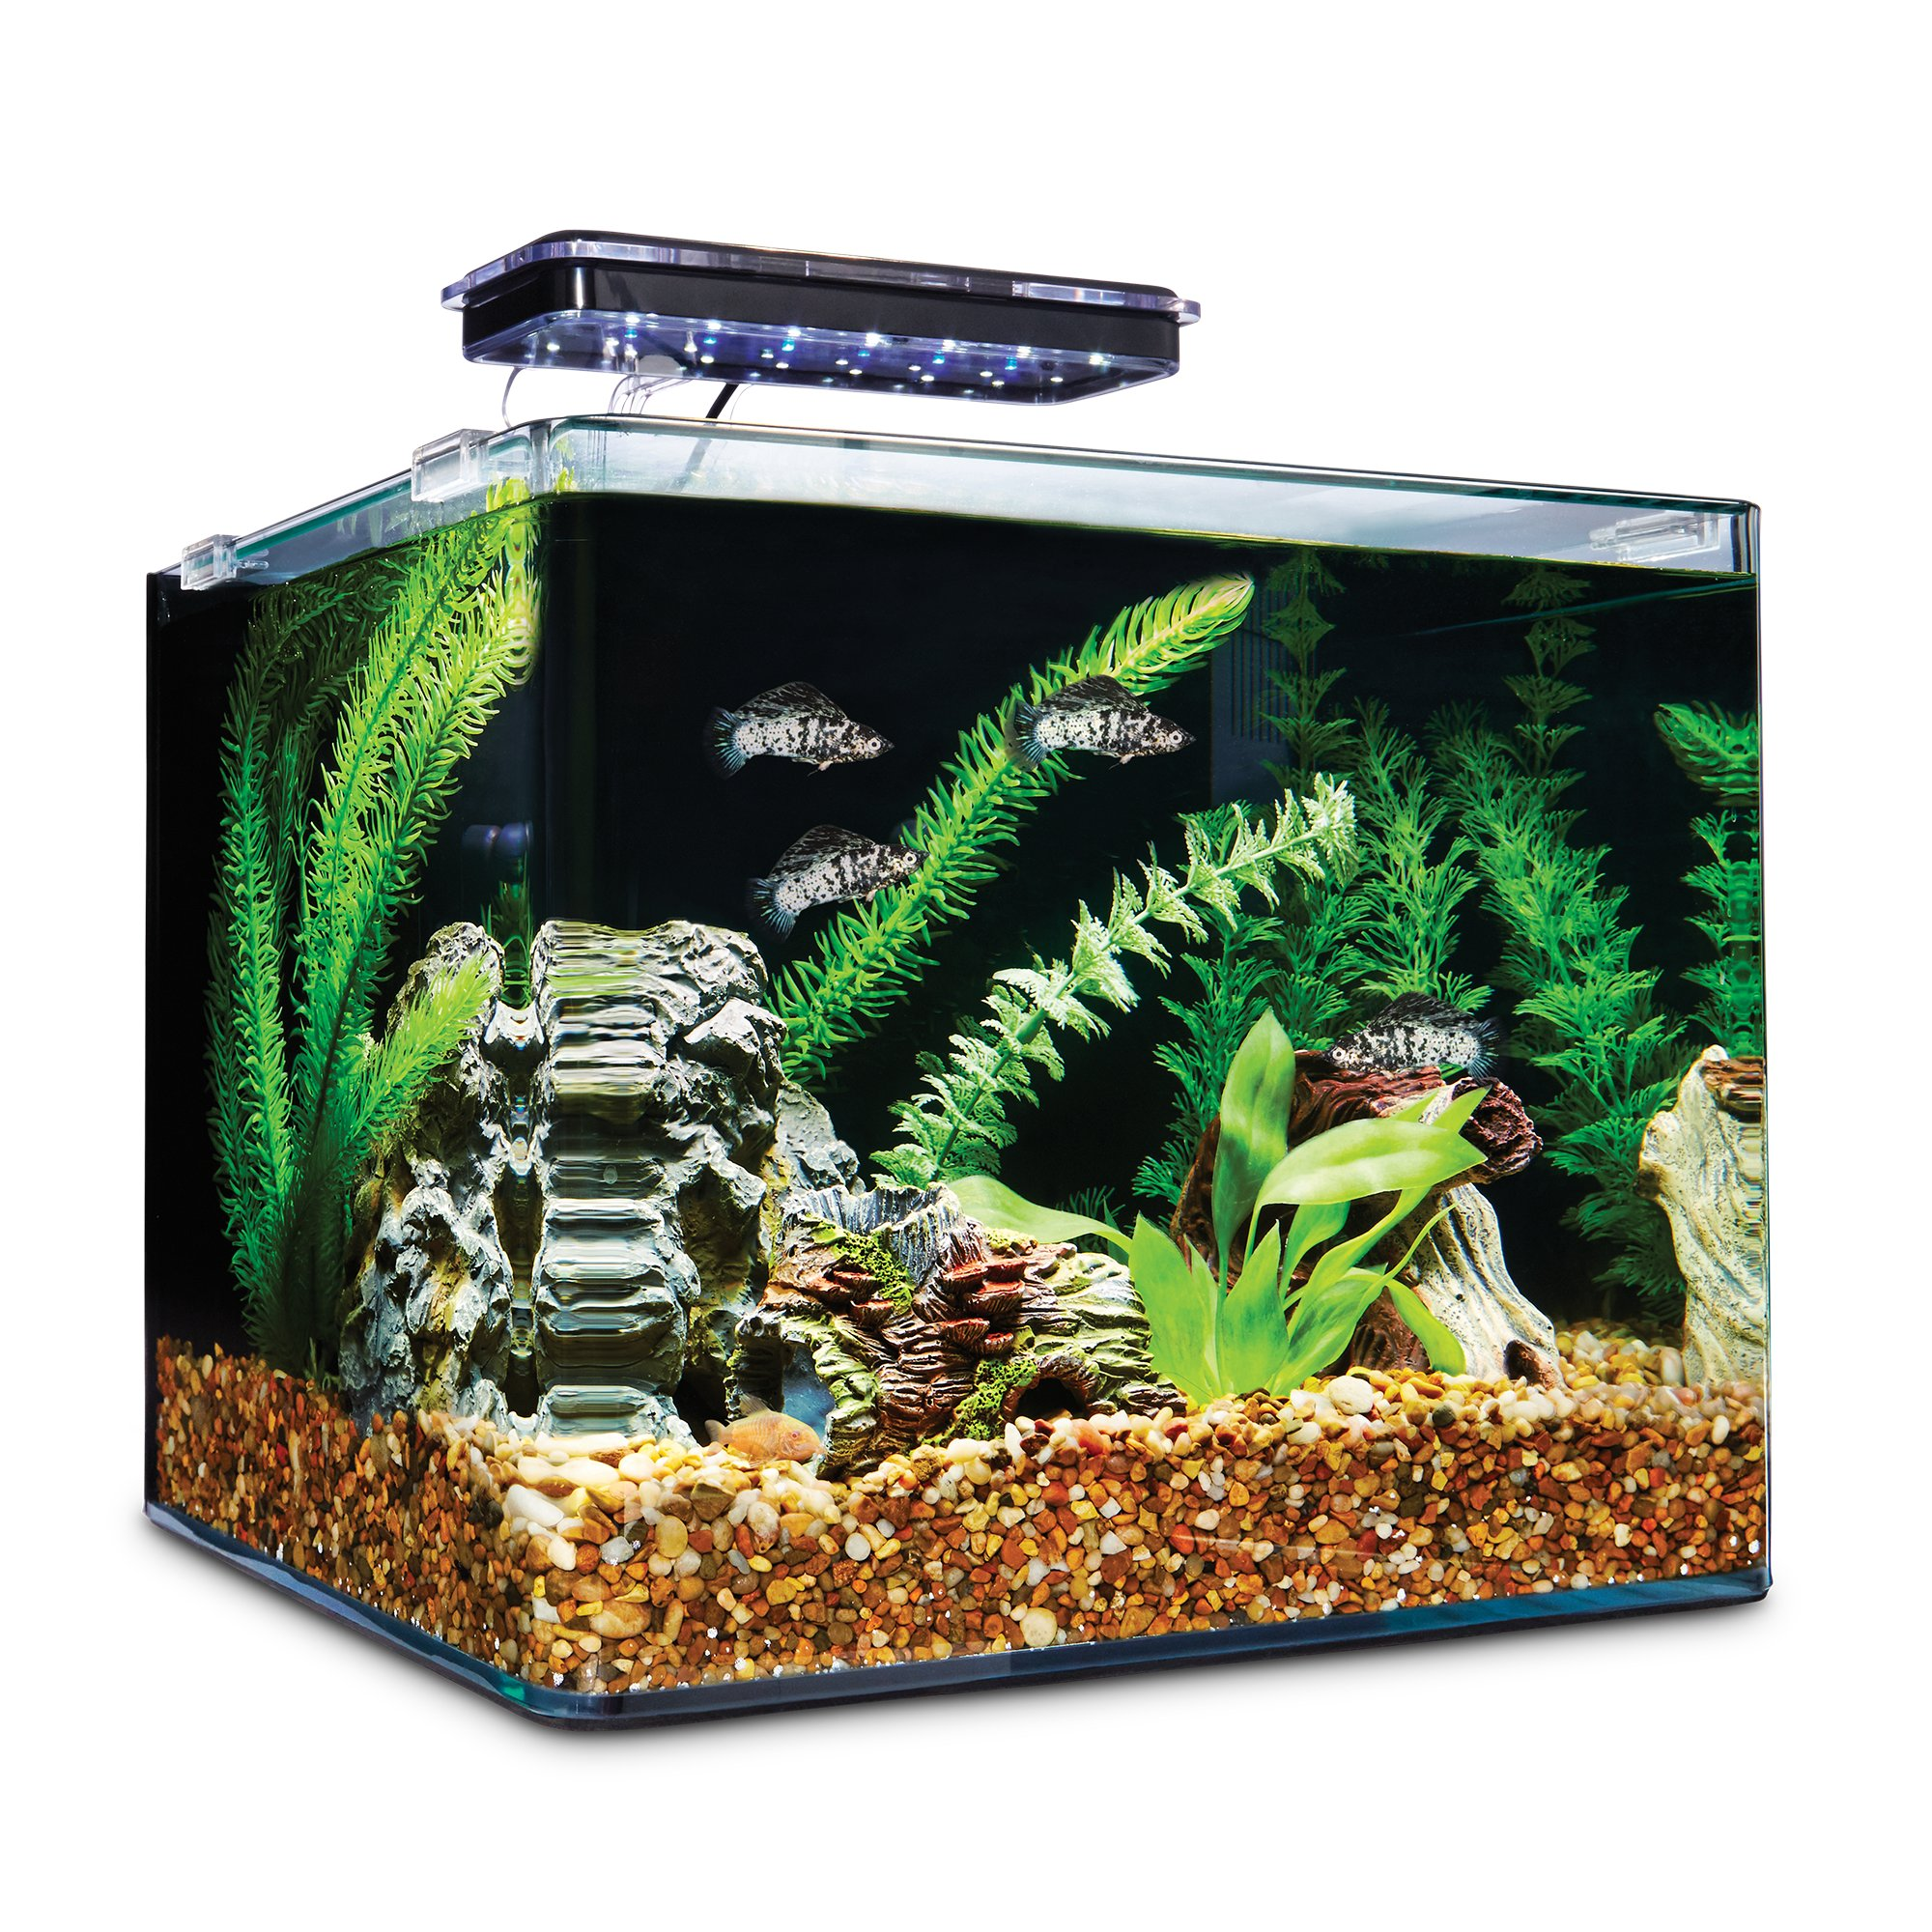 Imagitarium Frameless Freshwater Aquarium Kit Petco